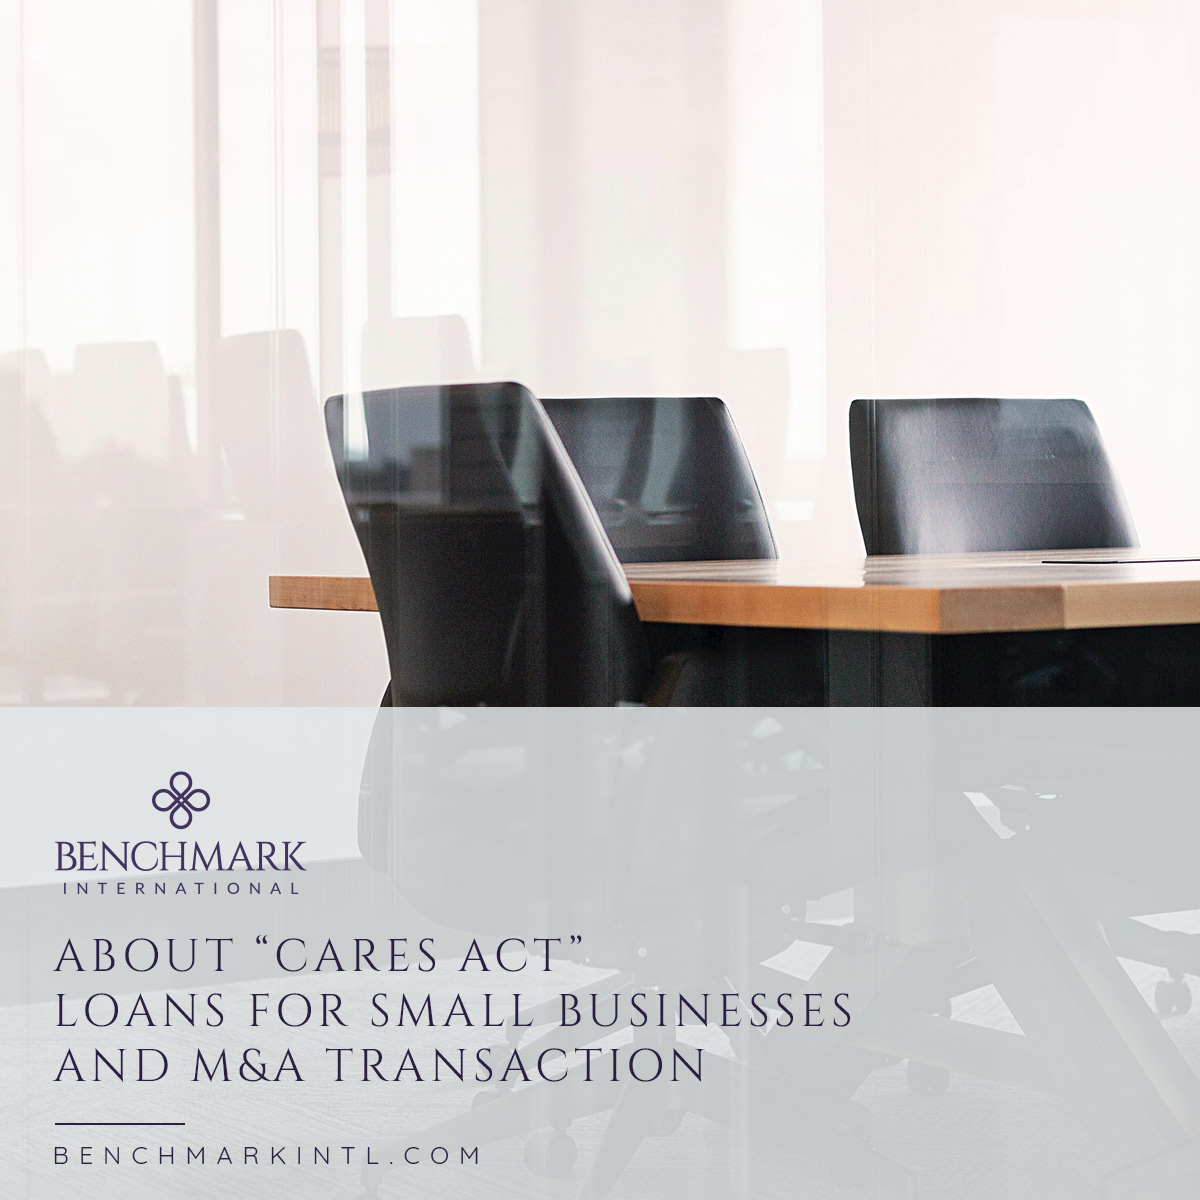 Cares_Act_Loans_for_Small_Businesses_and_M&A_Transaction_Social-1